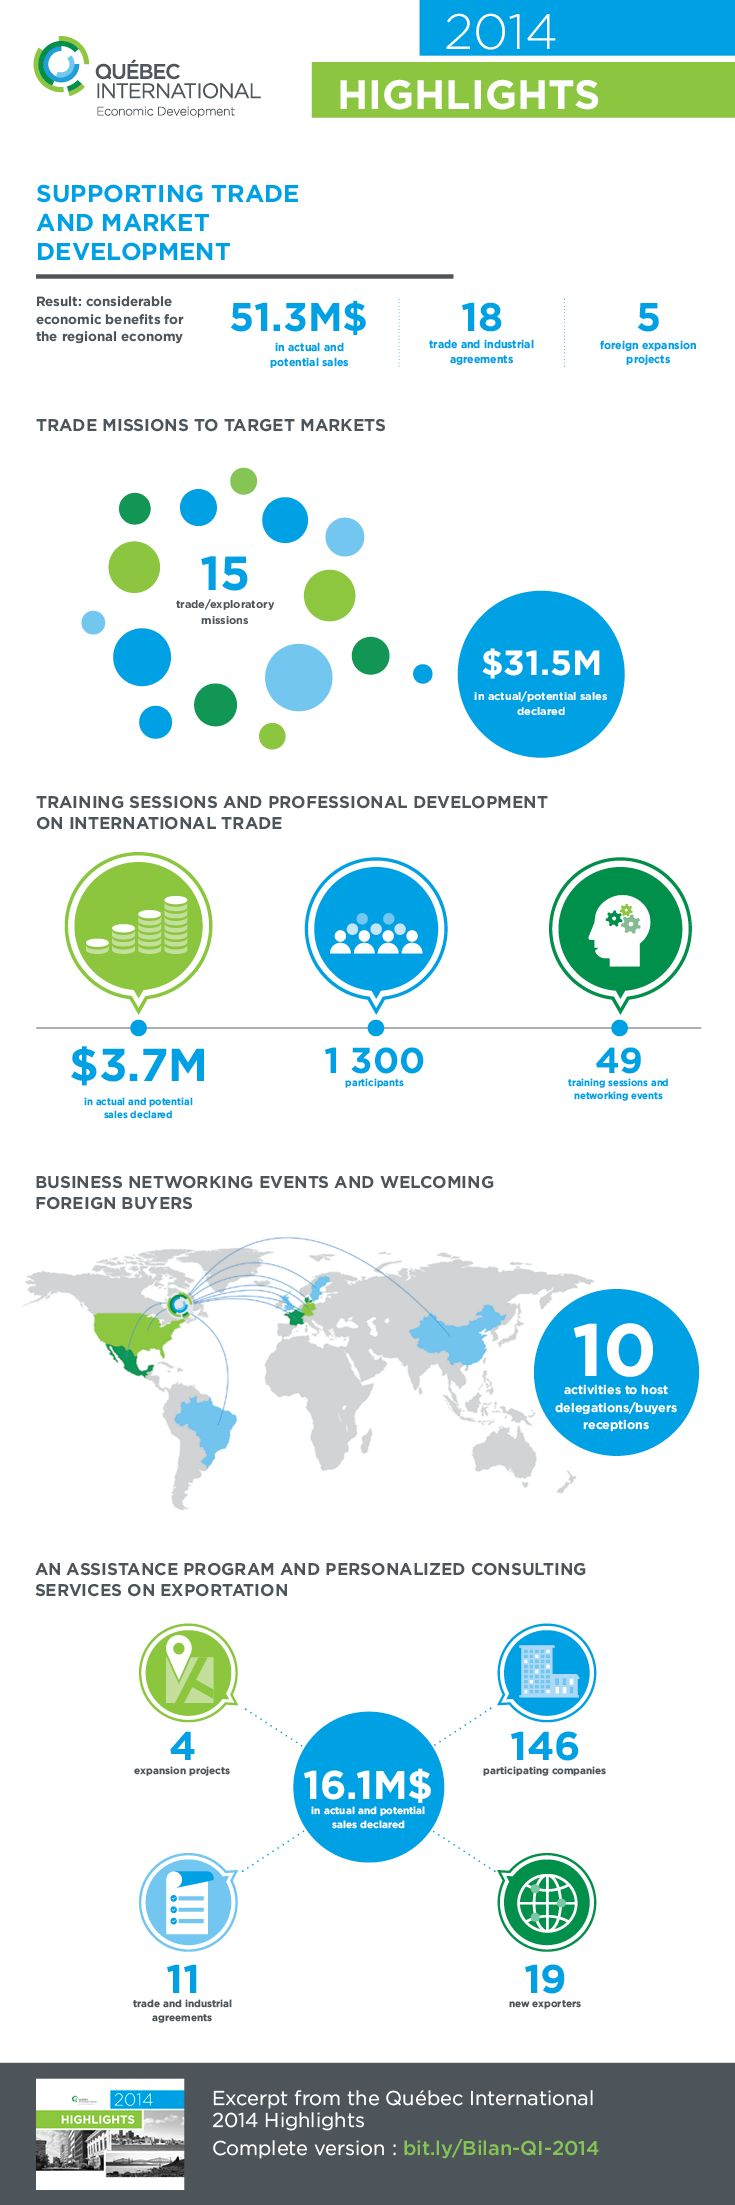 Québec International's market development service helps businesses in the Québec City region take on foreign markets. #quebecintl #trade #export #infography